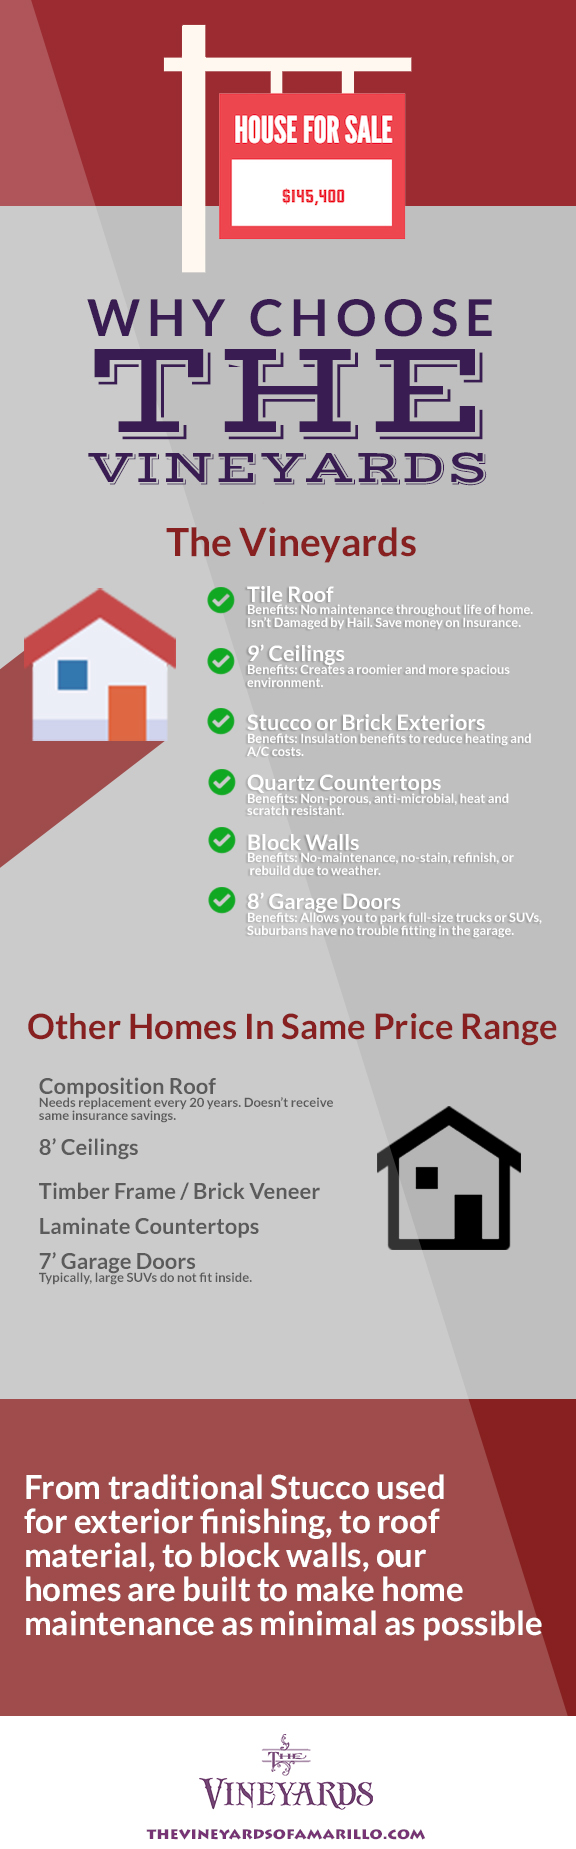 Infographic: Vineyards Homes vs. Other New Amarillo Homes in the Same Price Range